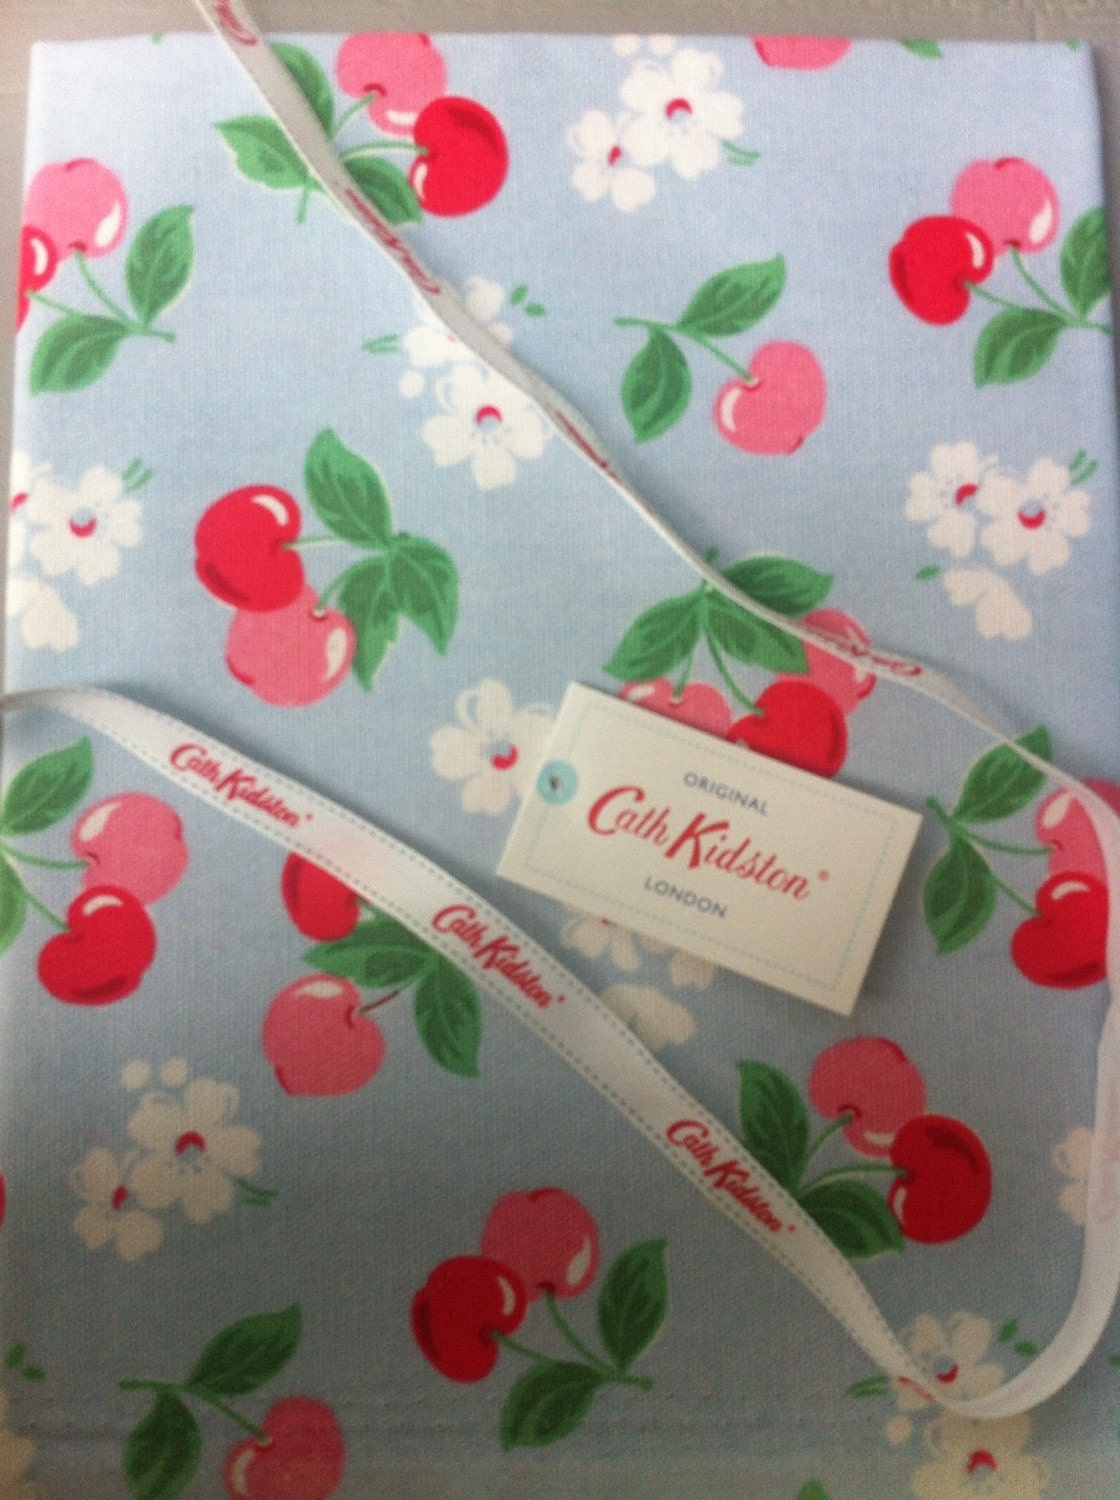 cath kidston fabric fat quarter cotton duck approx 45cm x 45cm genuine original from. Black Bedroom Furniture Sets. Home Design Ideas